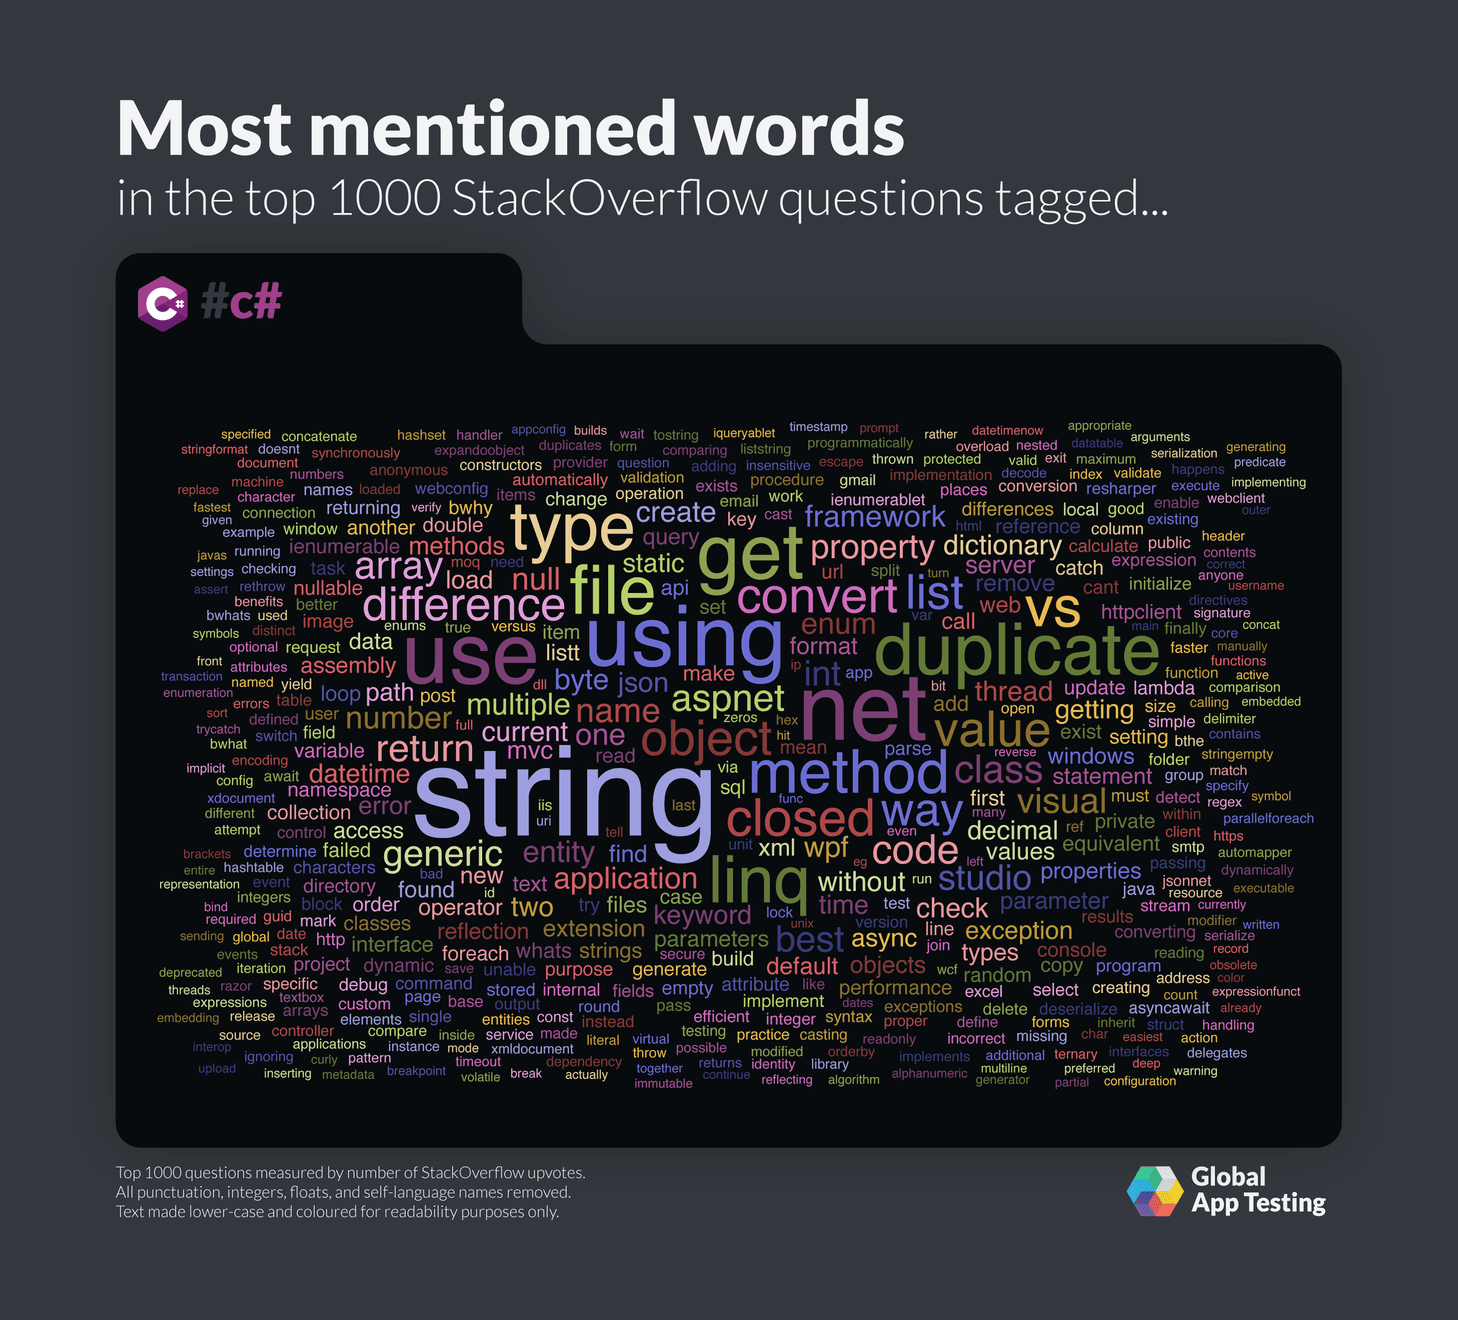 Most mentioned words for C# on StackOverflow.